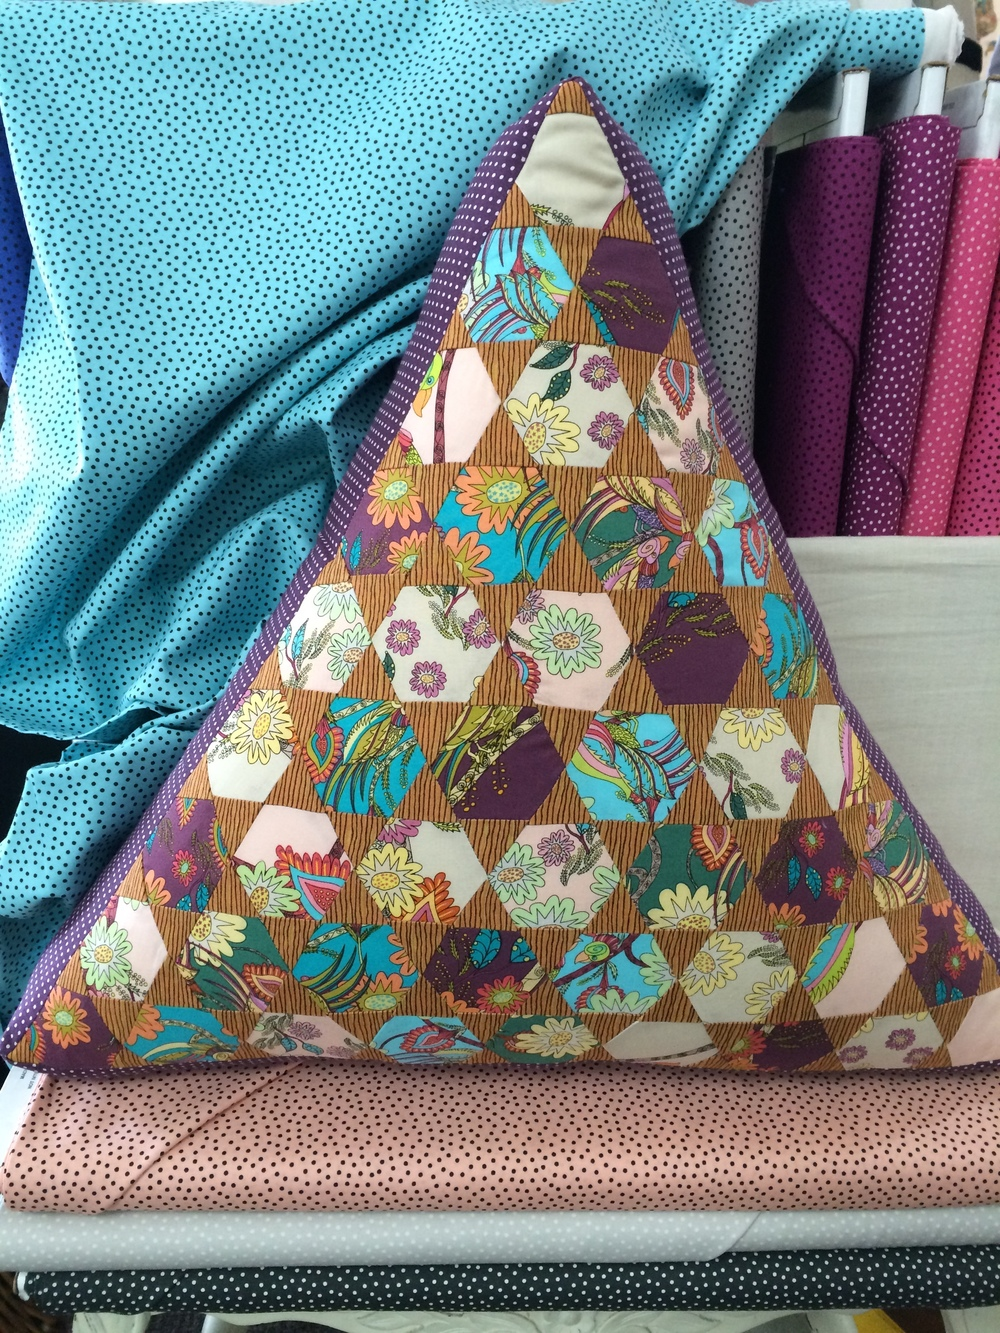 Helen's Triangle cushion